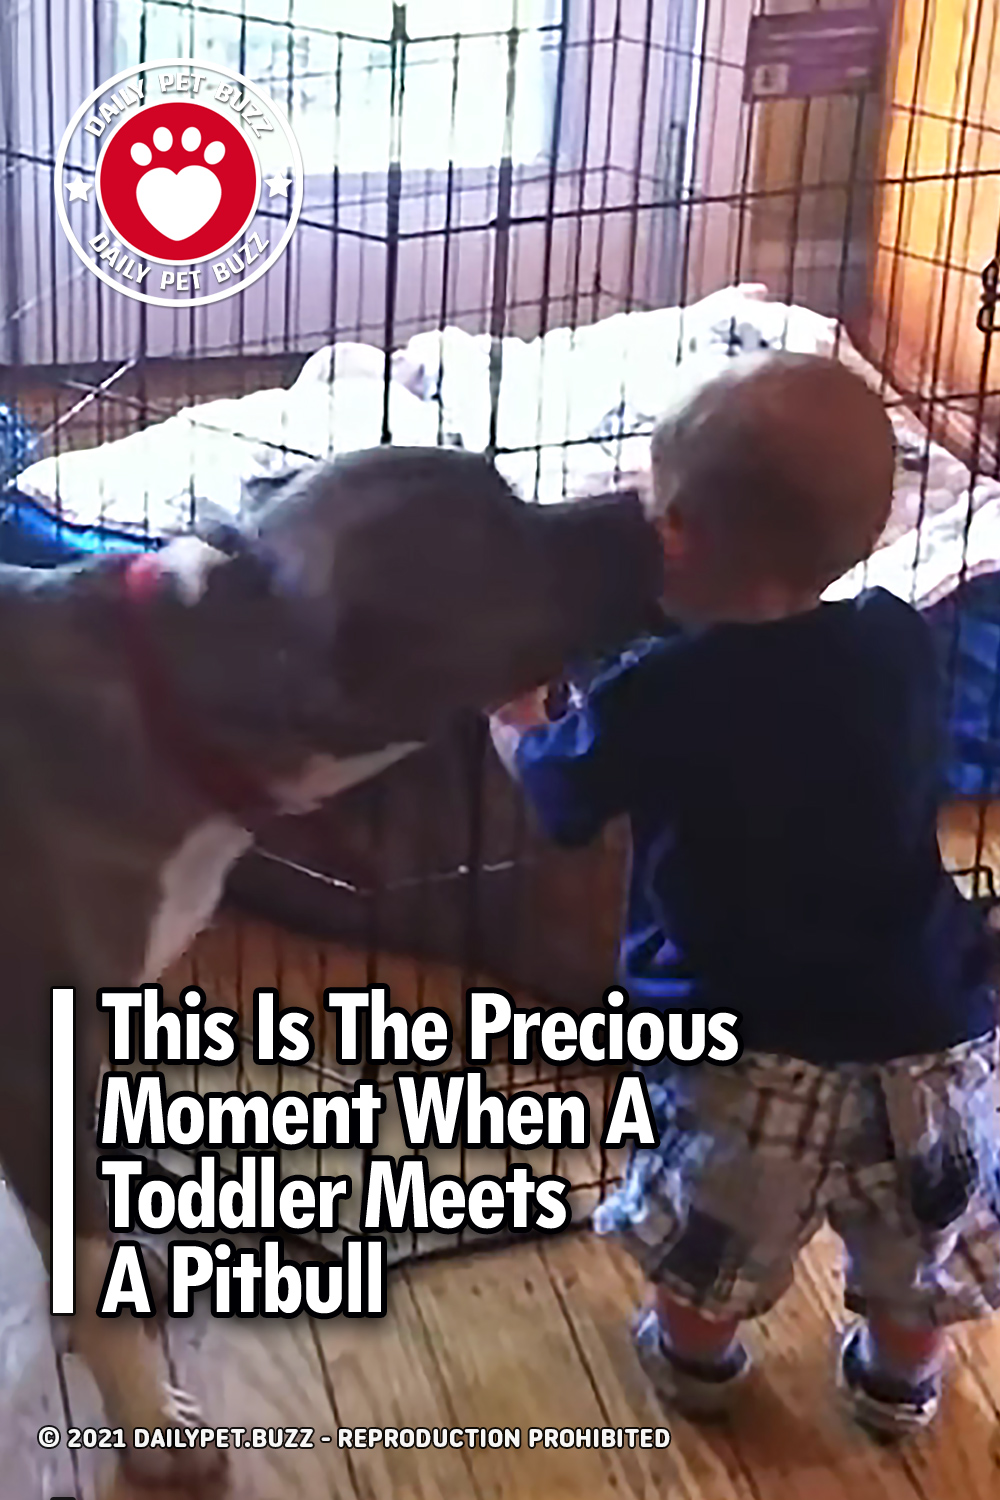 This Is The Precious Moment When A Toddler Meets A Pitbull